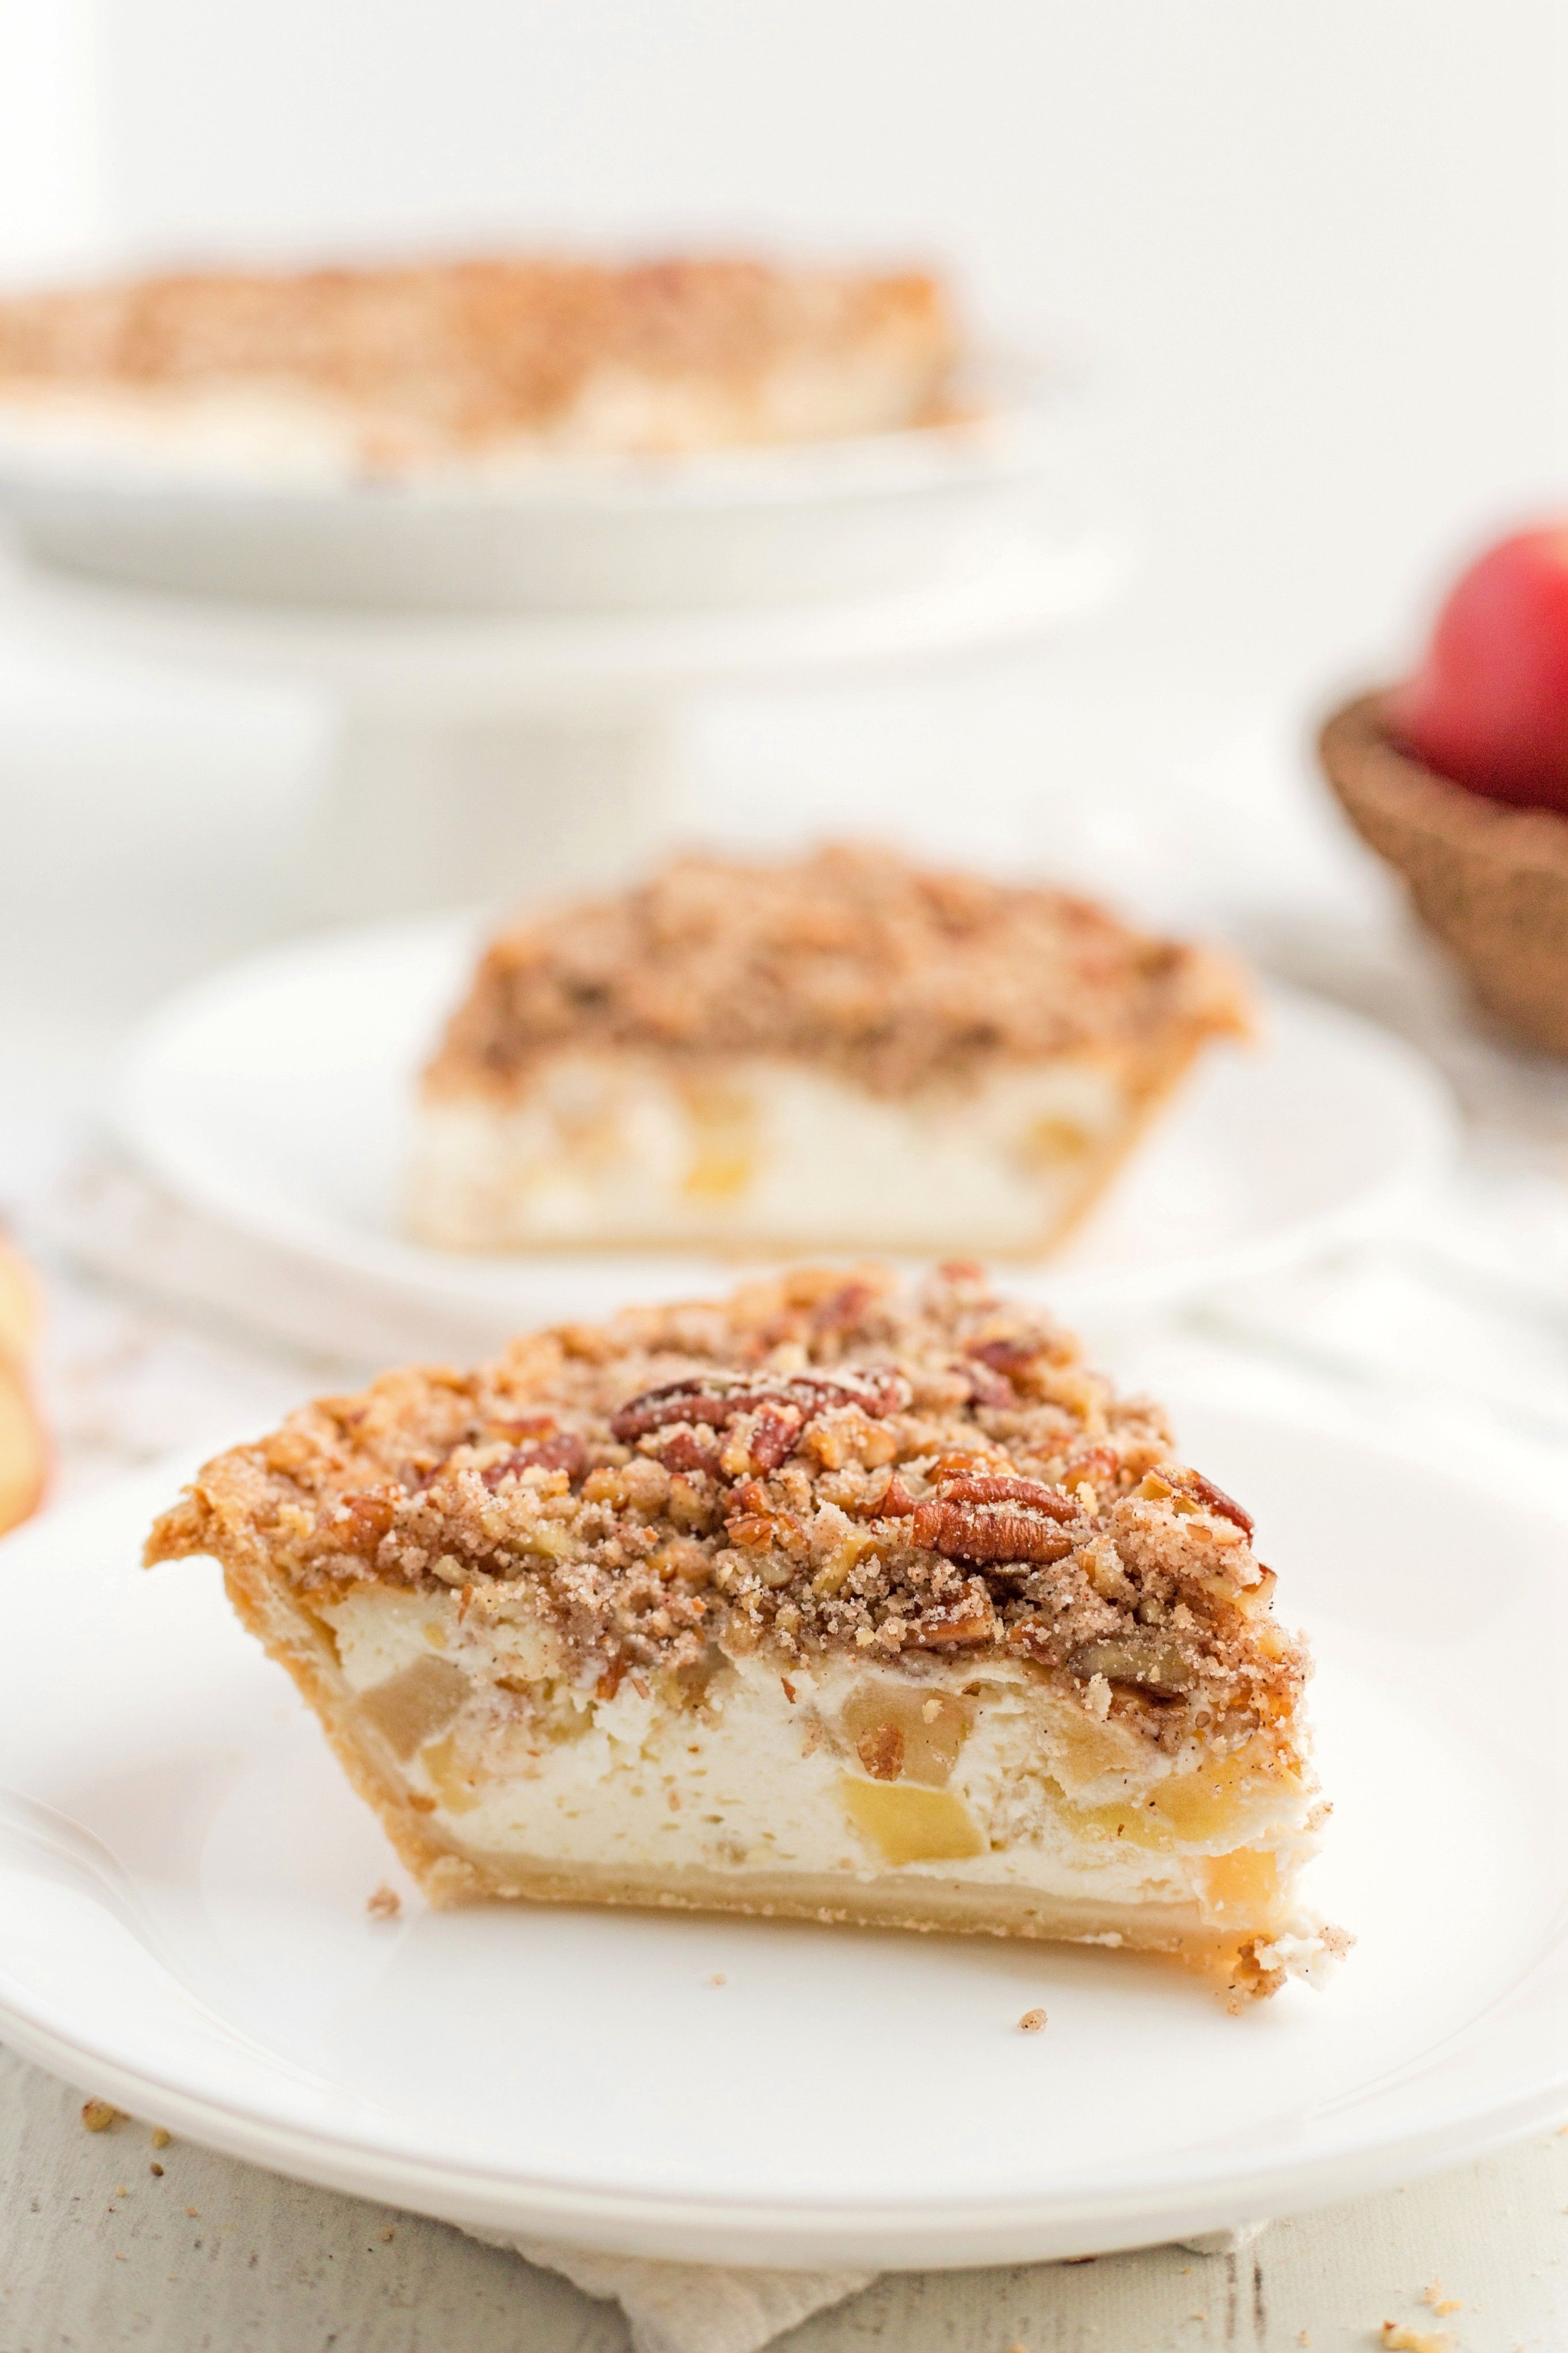 Sour Cream Apple Pie The Creamy Filling Almost Makes You Feel Like Your Eating Cheesecake And Then You Get Sour Cream Apple Pie Food Best Dessert Recipes